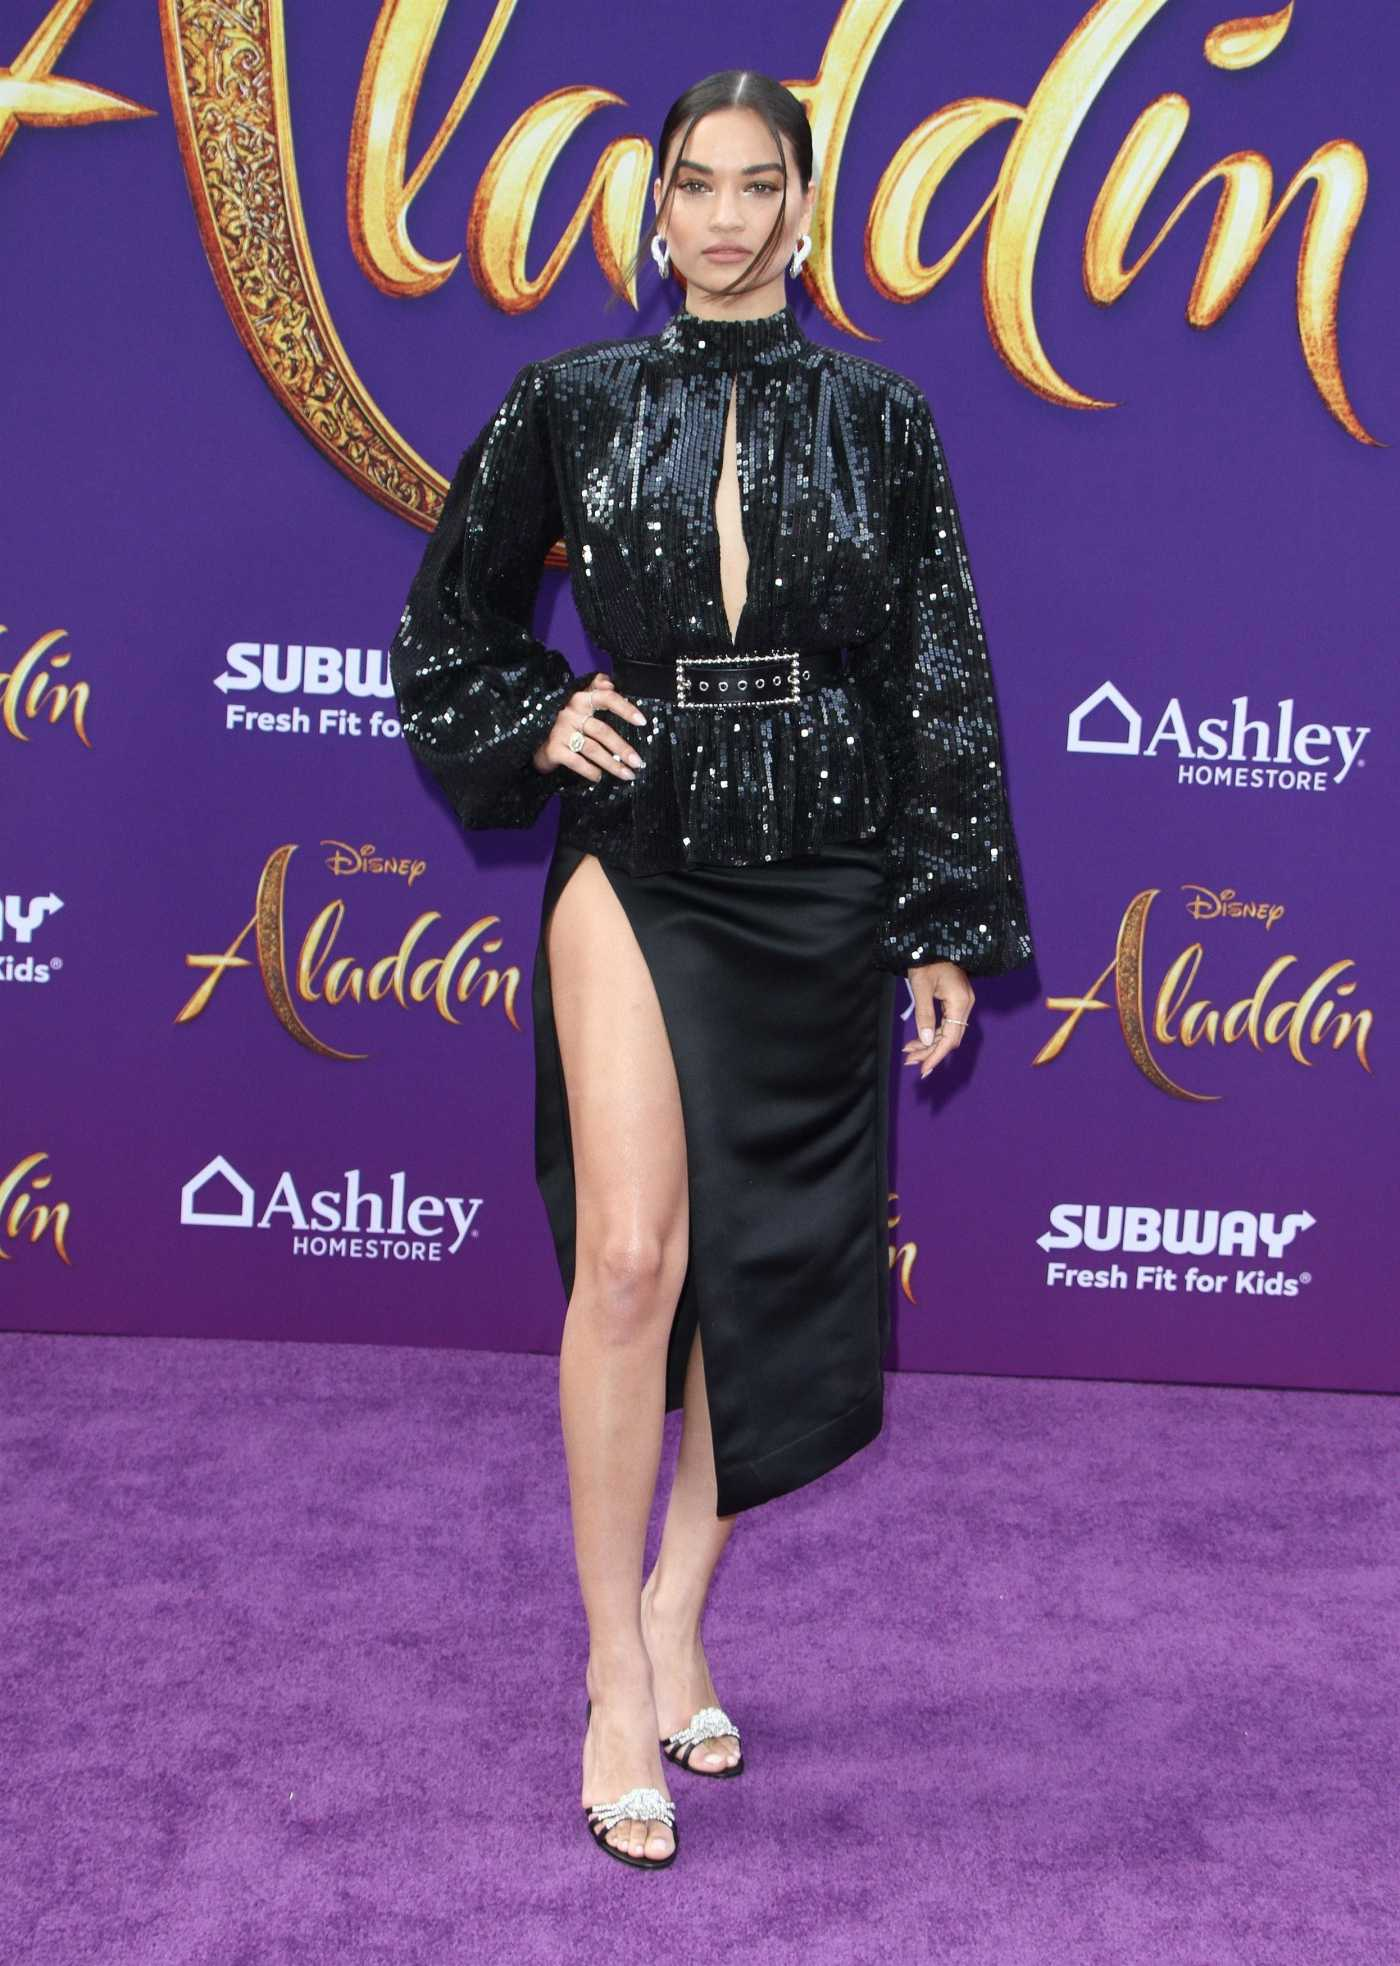 Shanina Shaik Attends Disney's Aladdin Premiere in Hollywood 05/21/2019